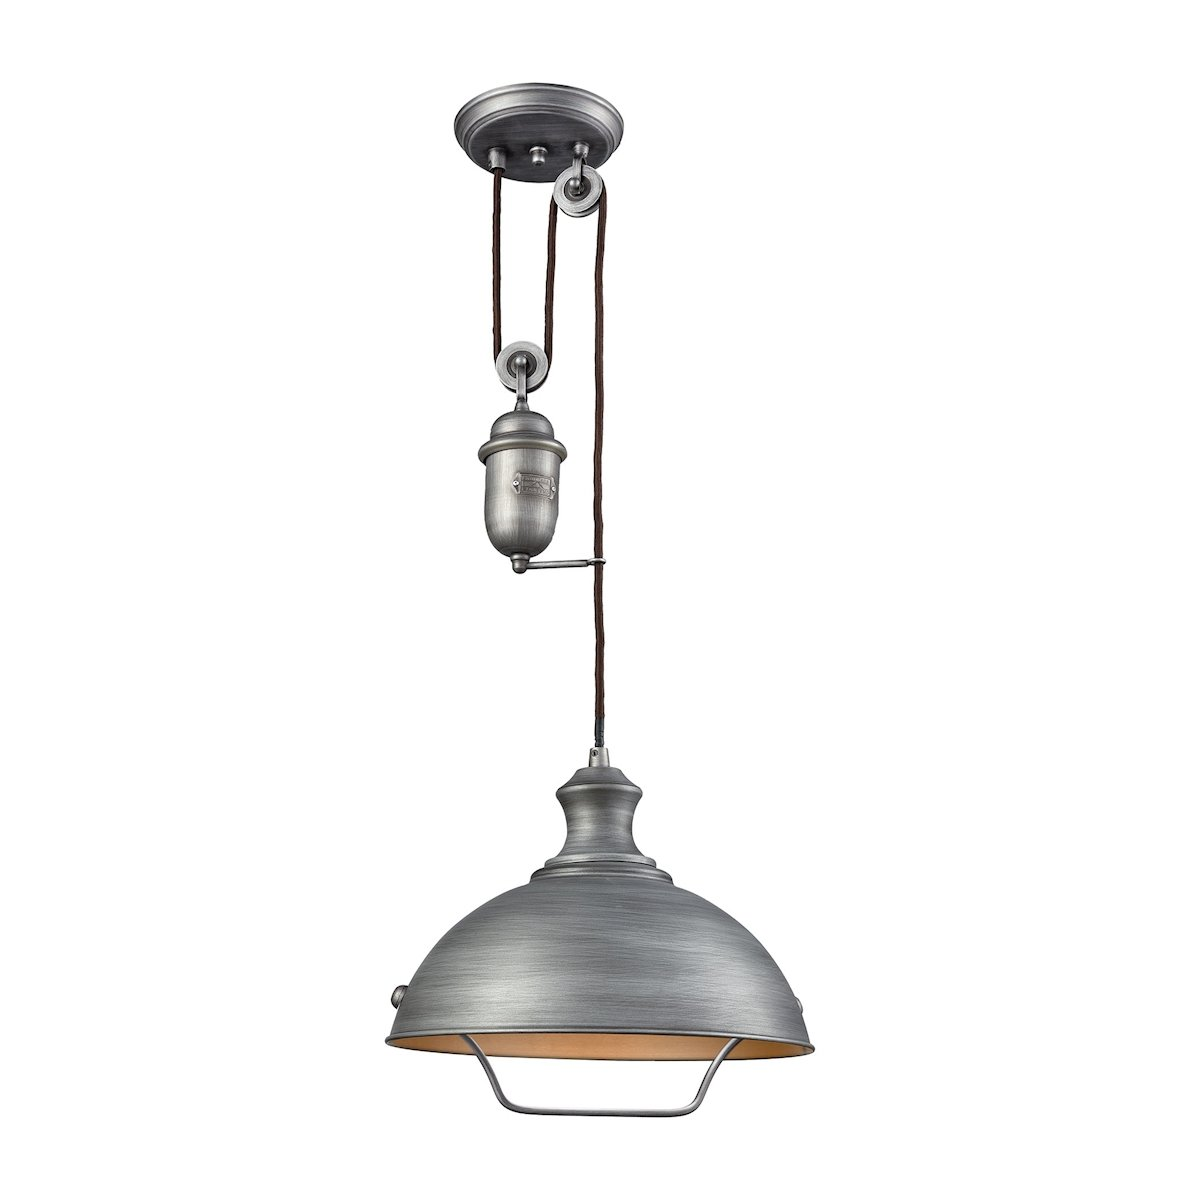 Farmhouse 1 Light Pulldown Pendant In Weathered Zinc By Elk